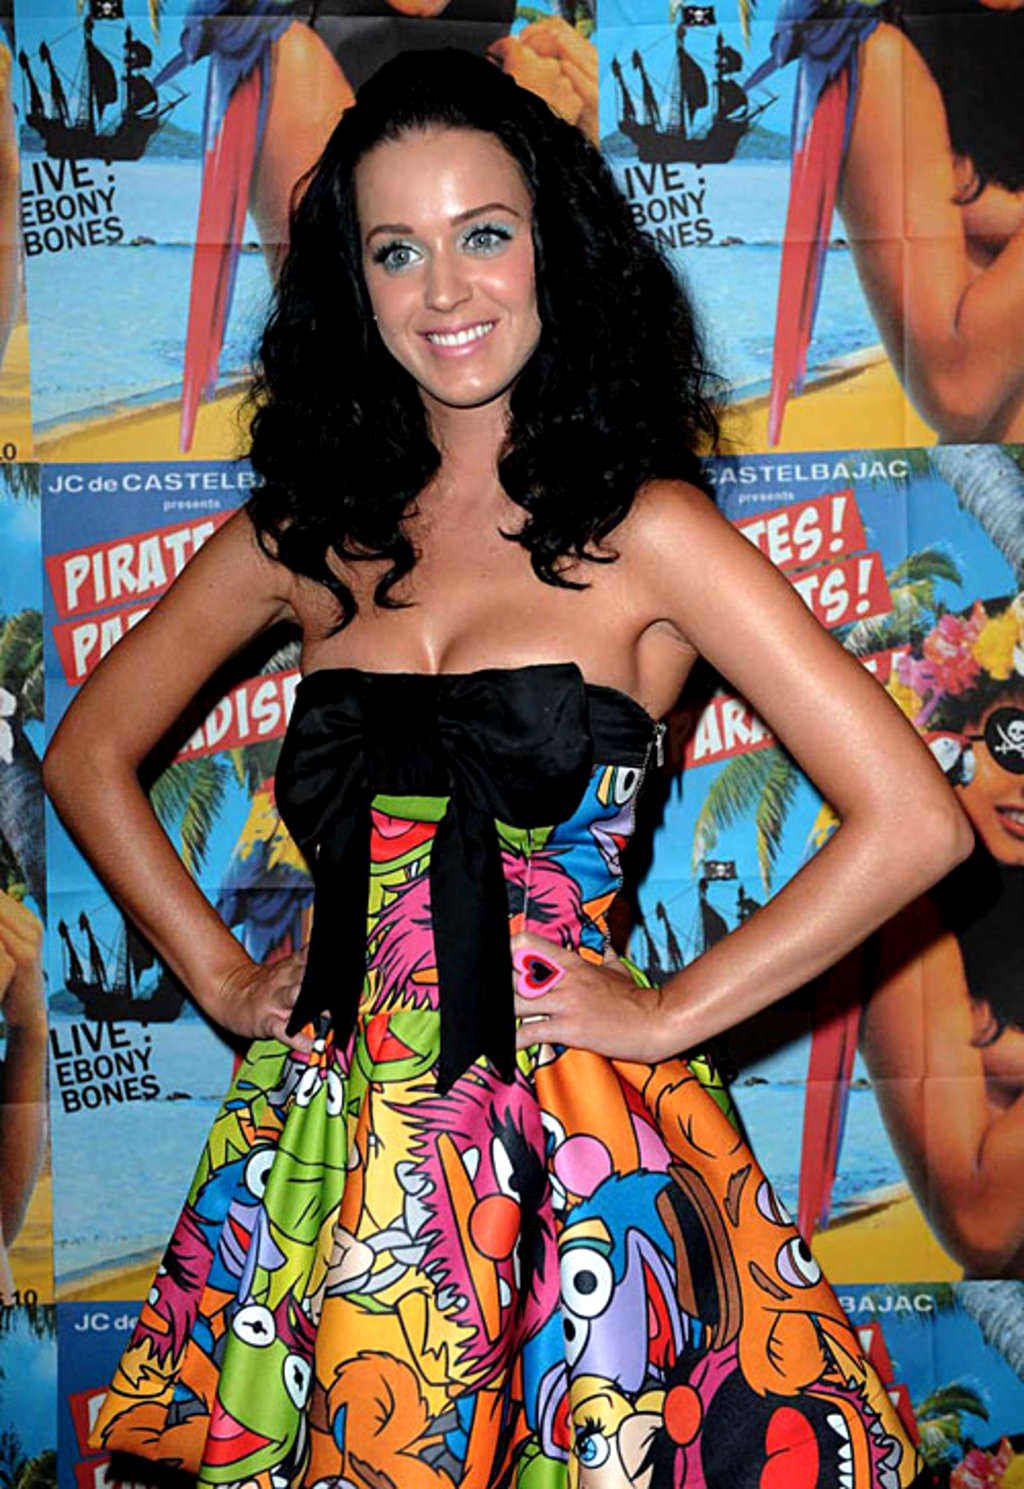 Babylon X Katy Perry Instance Access Katy Perry Hdimage